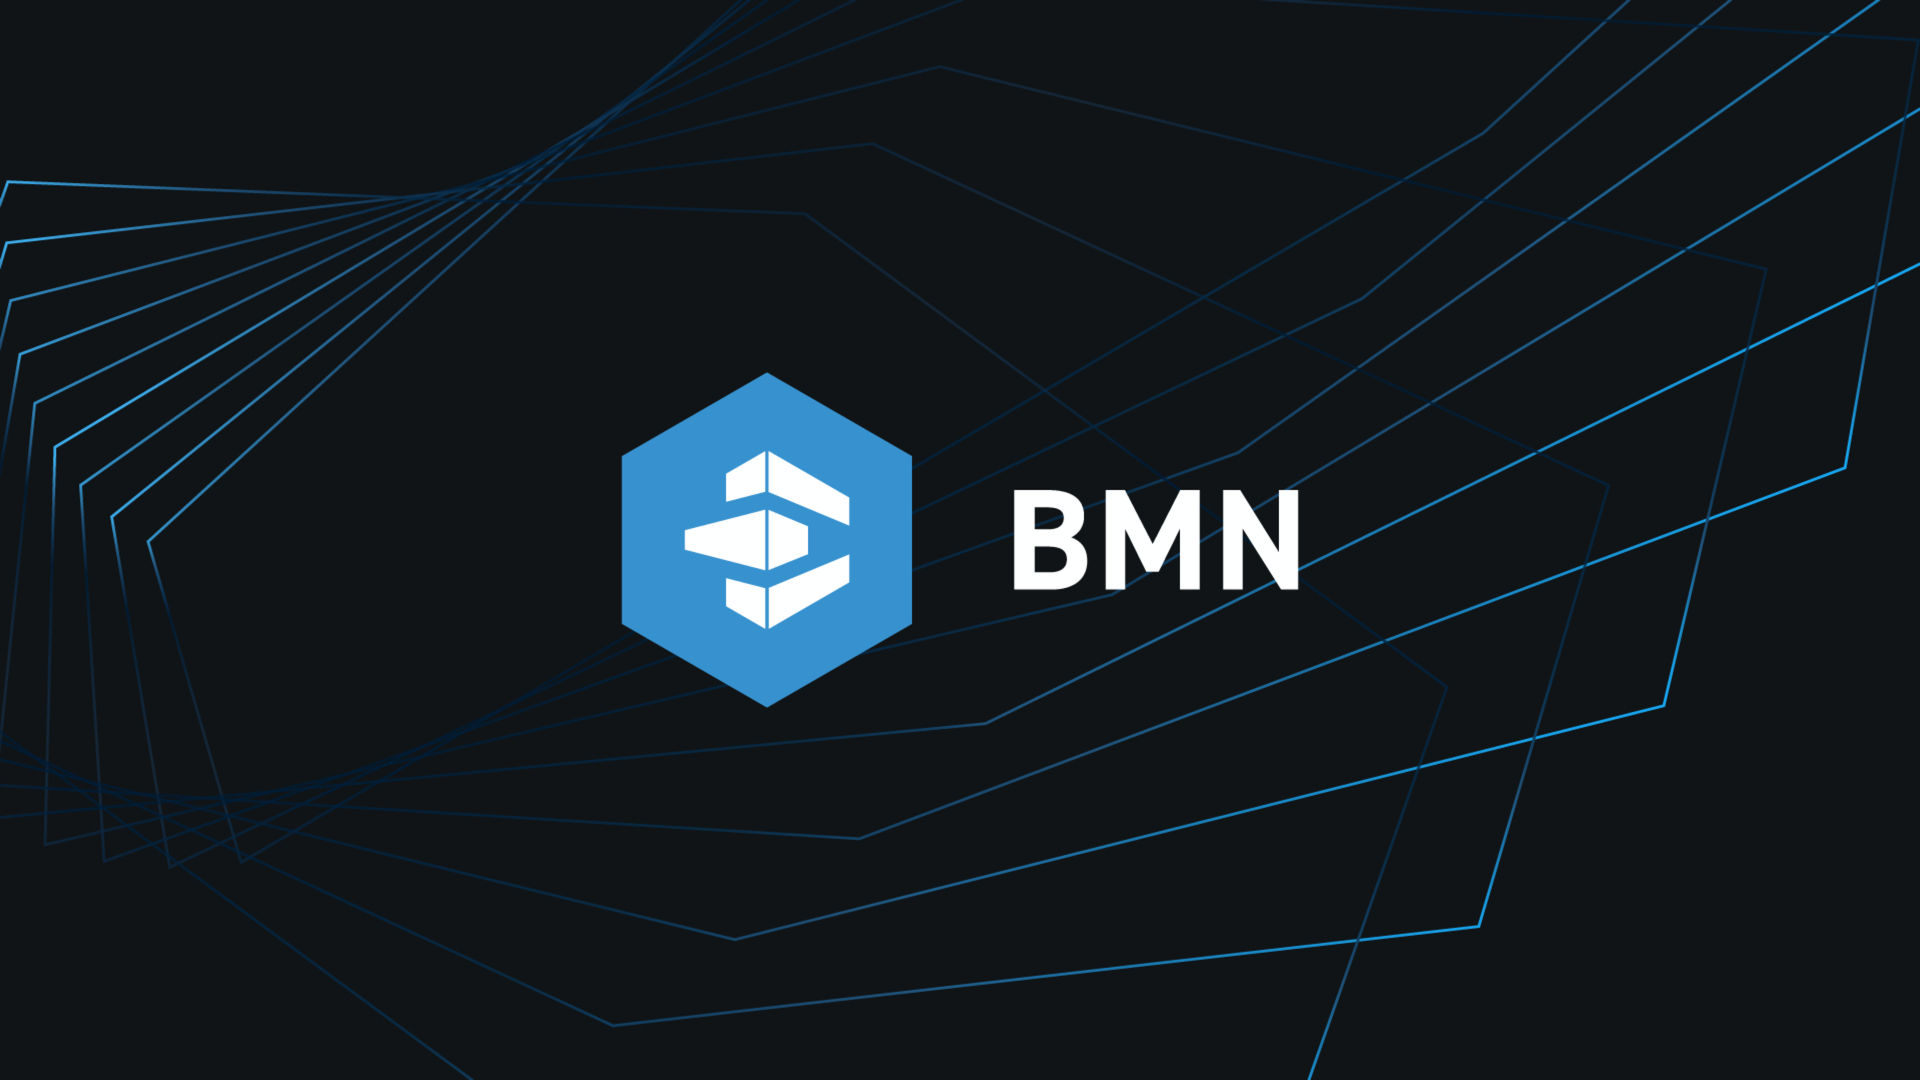 Expanding Participation in Bitcoin Mining with the BMN